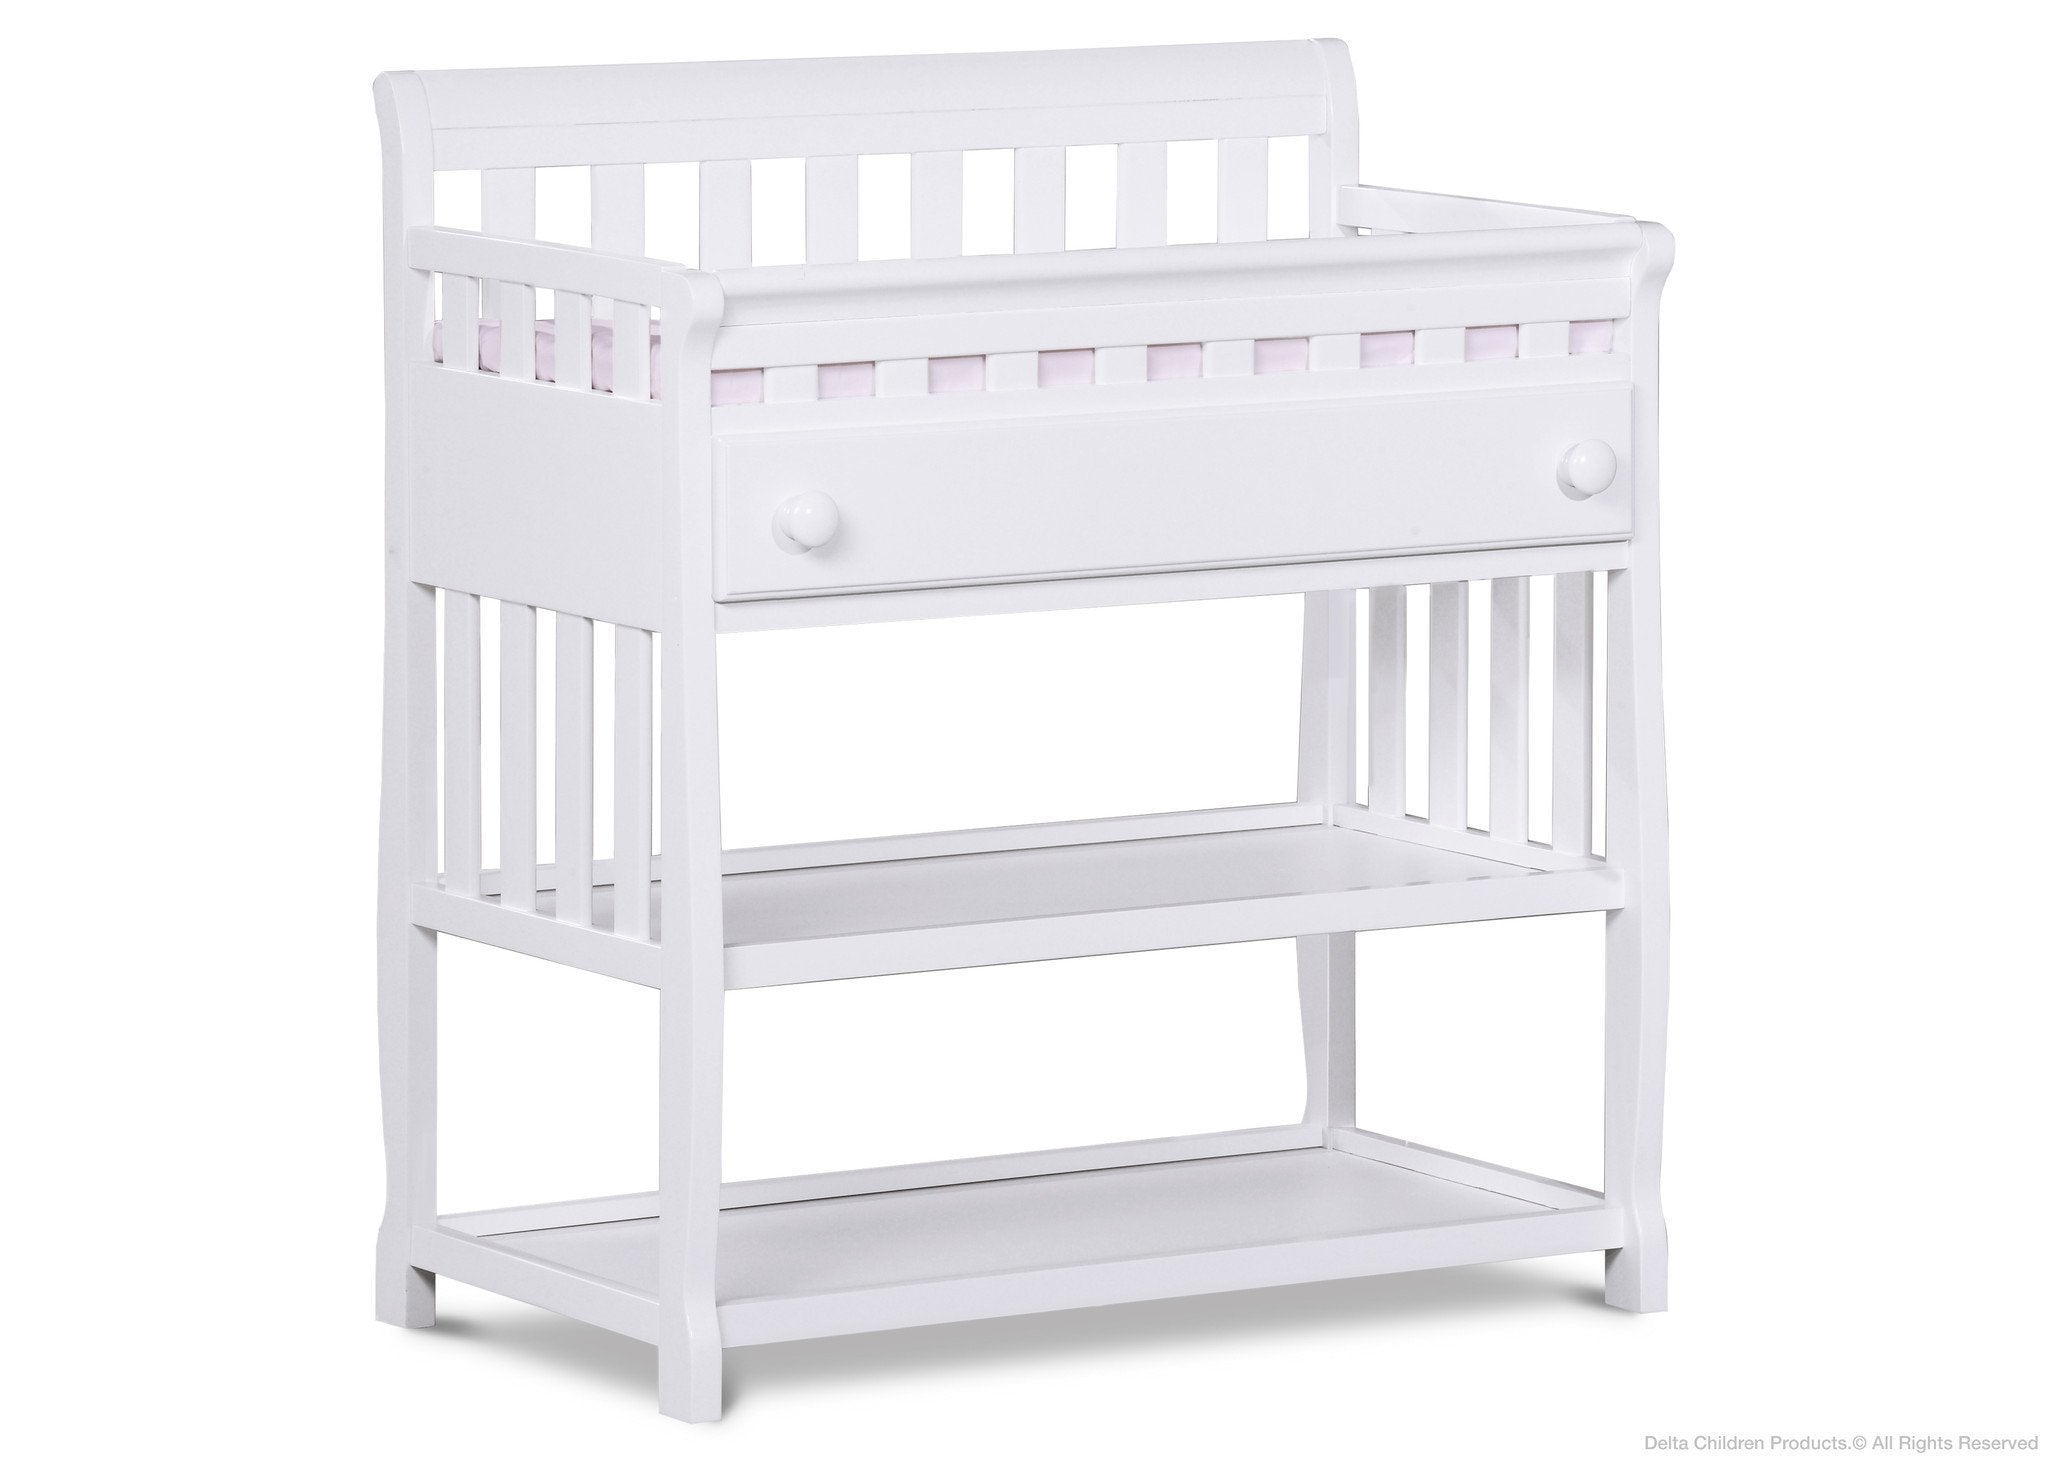 Delta Children White (100) Solutions Changing Table Side View a2a